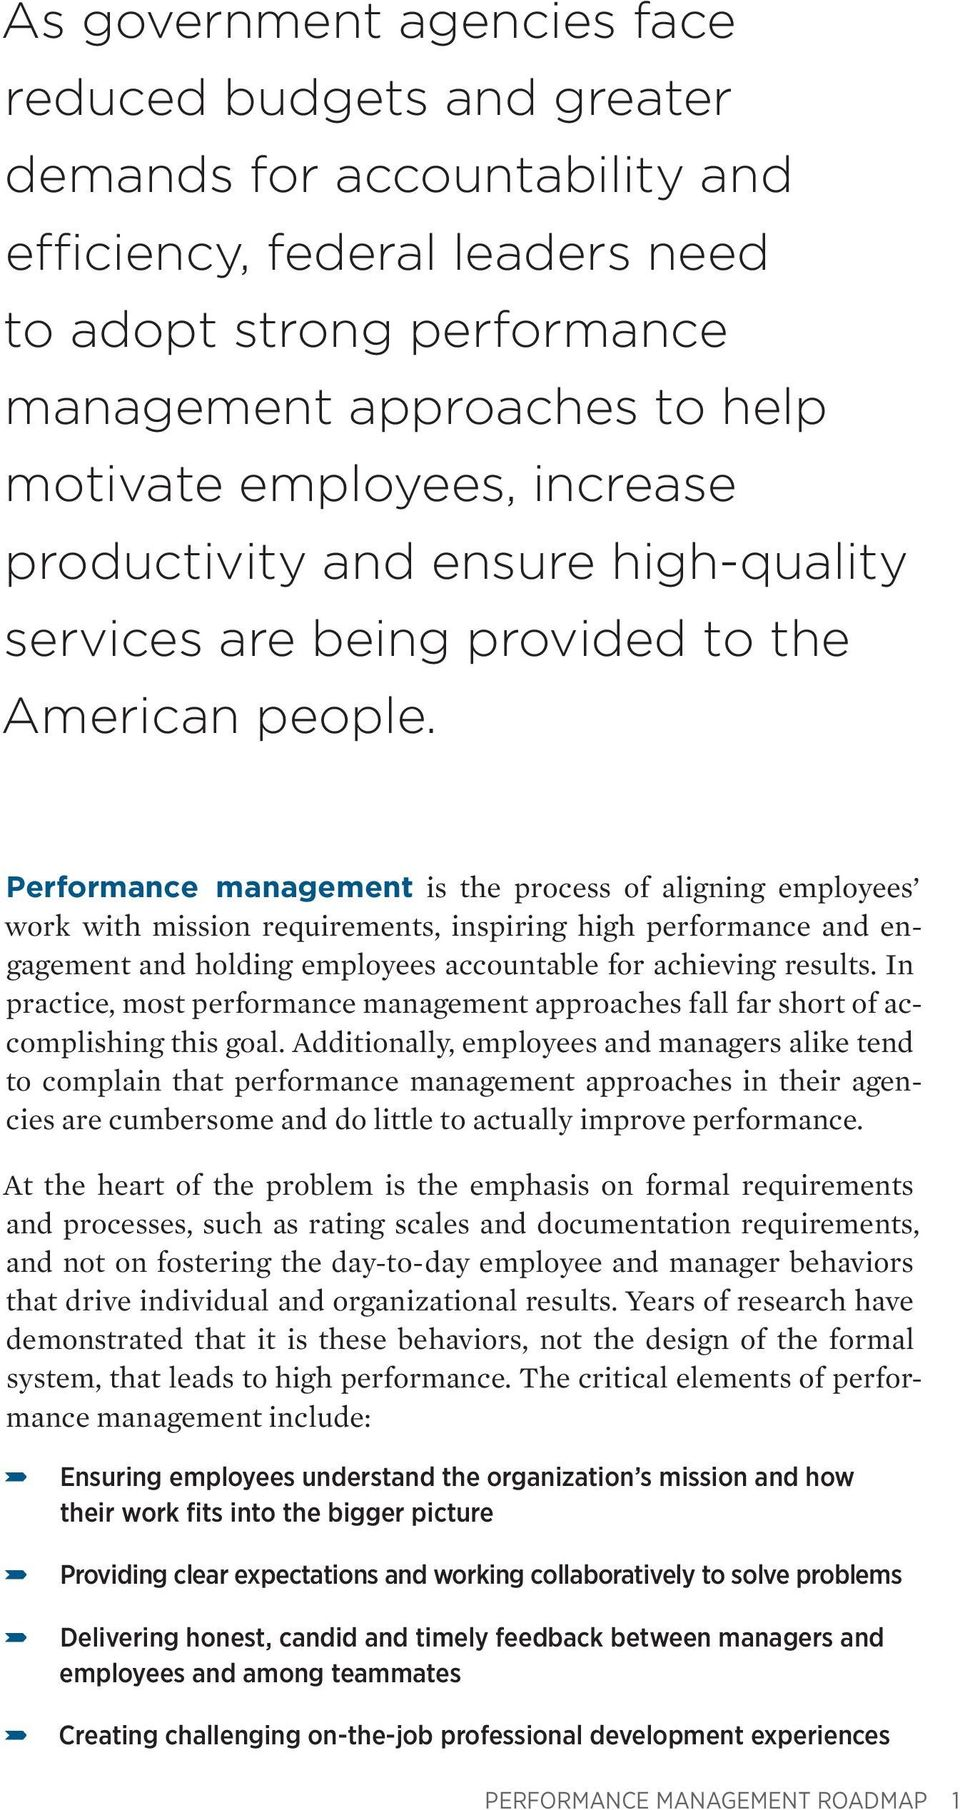 Performance management is the process of aligning employees work with mission requirements, inspiring high performance and engagement and holding employees accountable for achieving results.